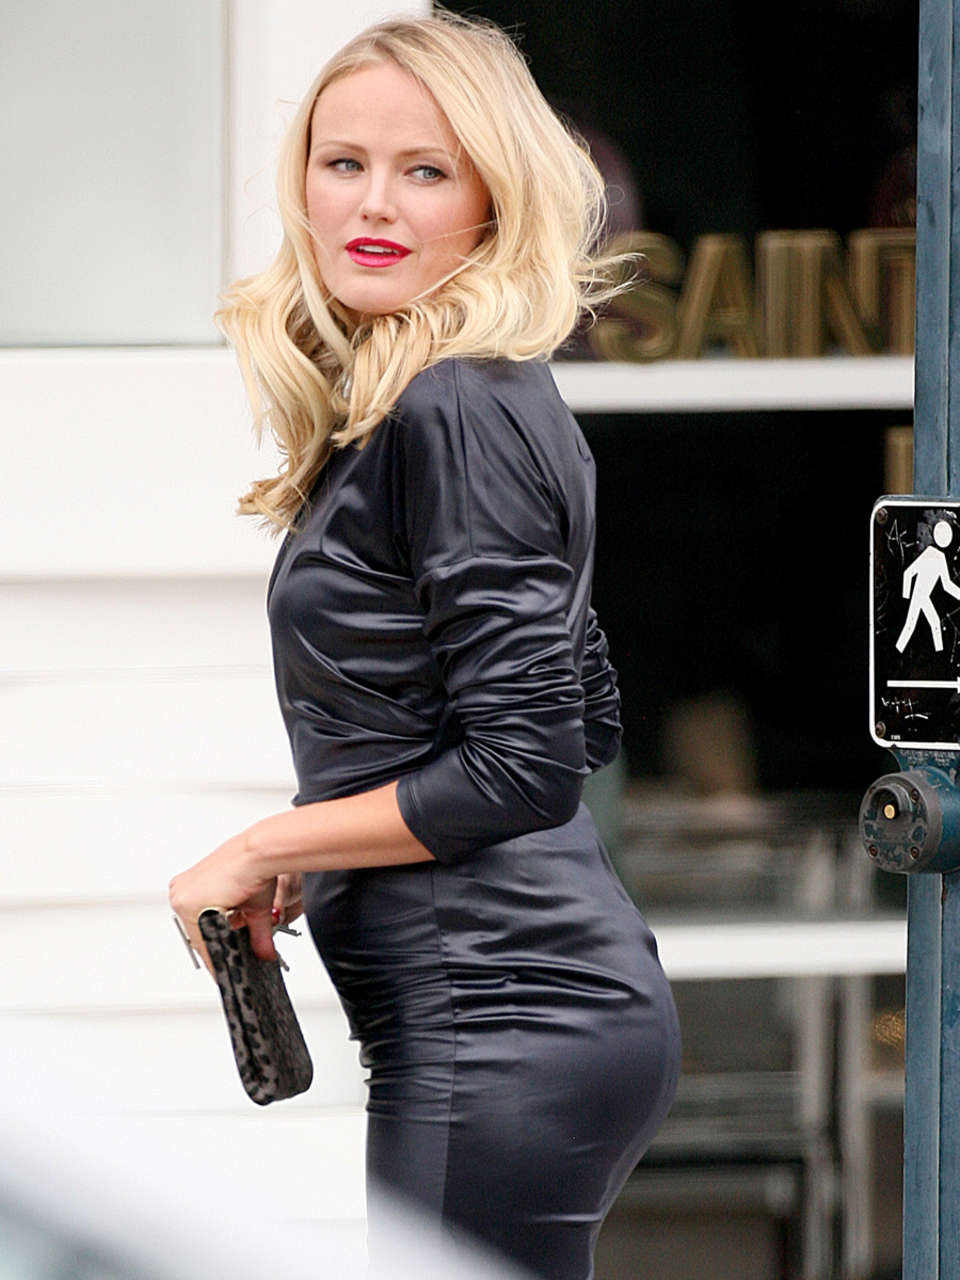 Malin Akerman in leather dress -04 - GotCeleb Malin Akerman Photos